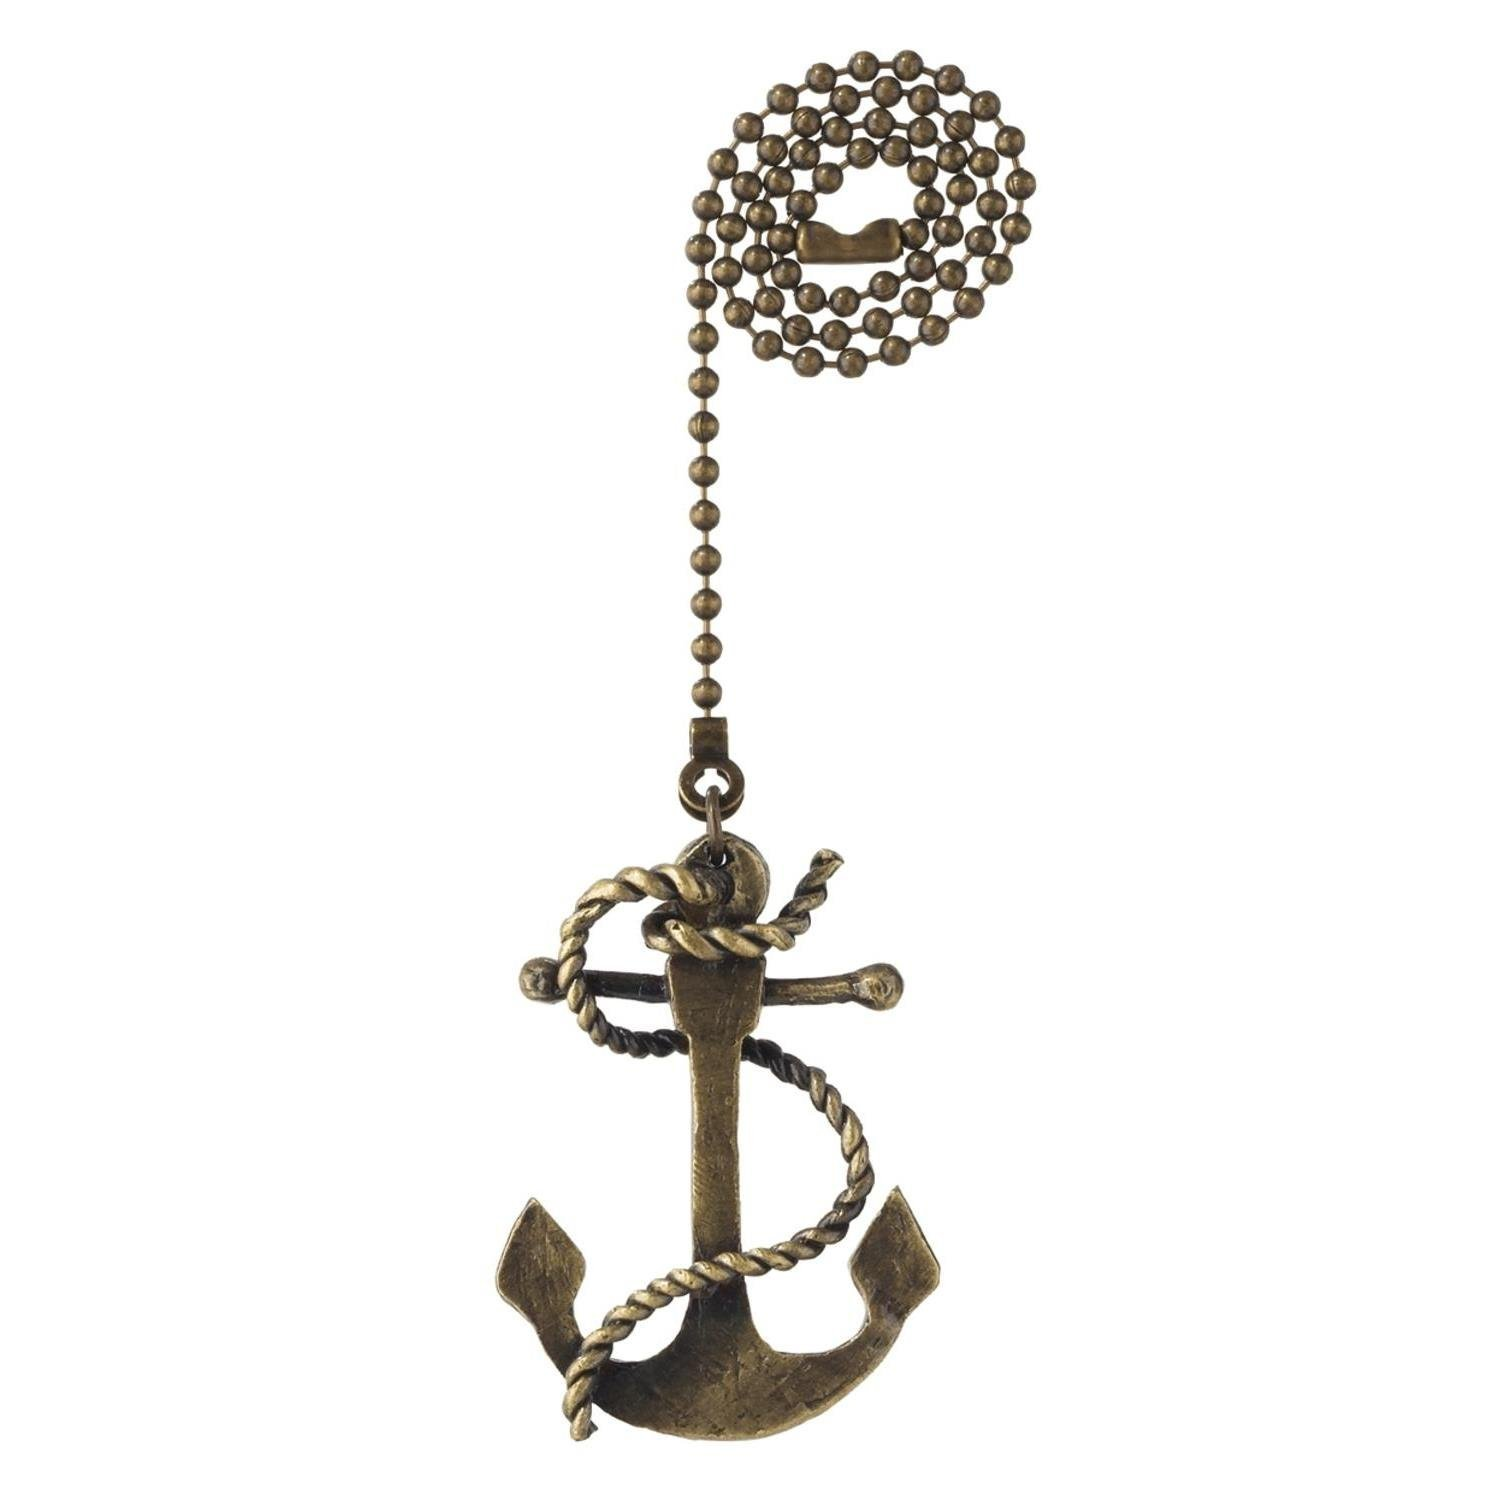 Westinghouse Lighting 77644 Corp 12-Inch Sea Anchor Pull Chain